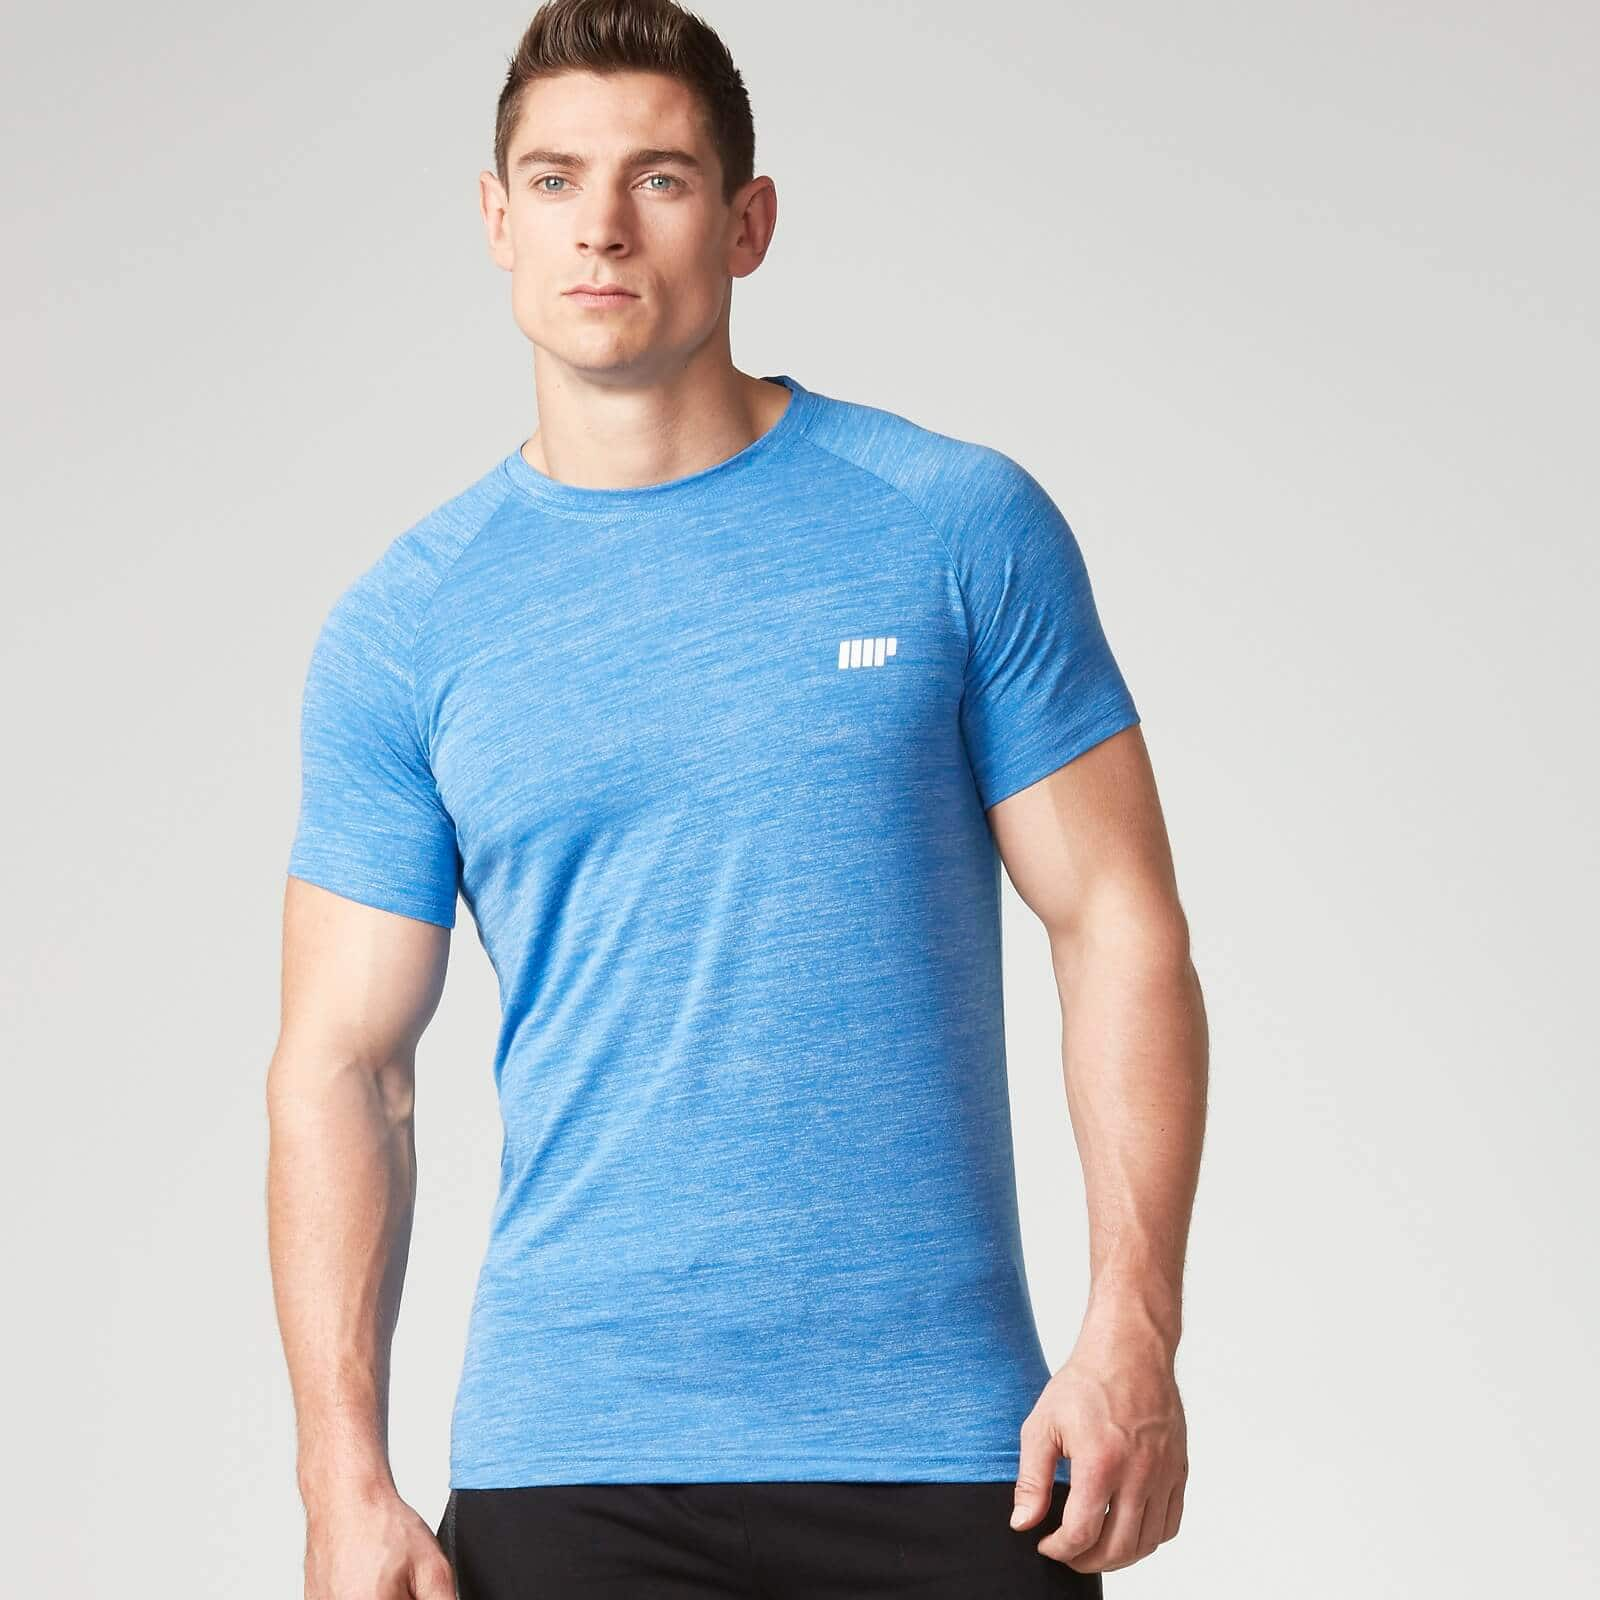 50% off all workout clothing at MyProtein — Men's Fast-Track Shirt $8.25, Women's Tie Back Vest $5.62